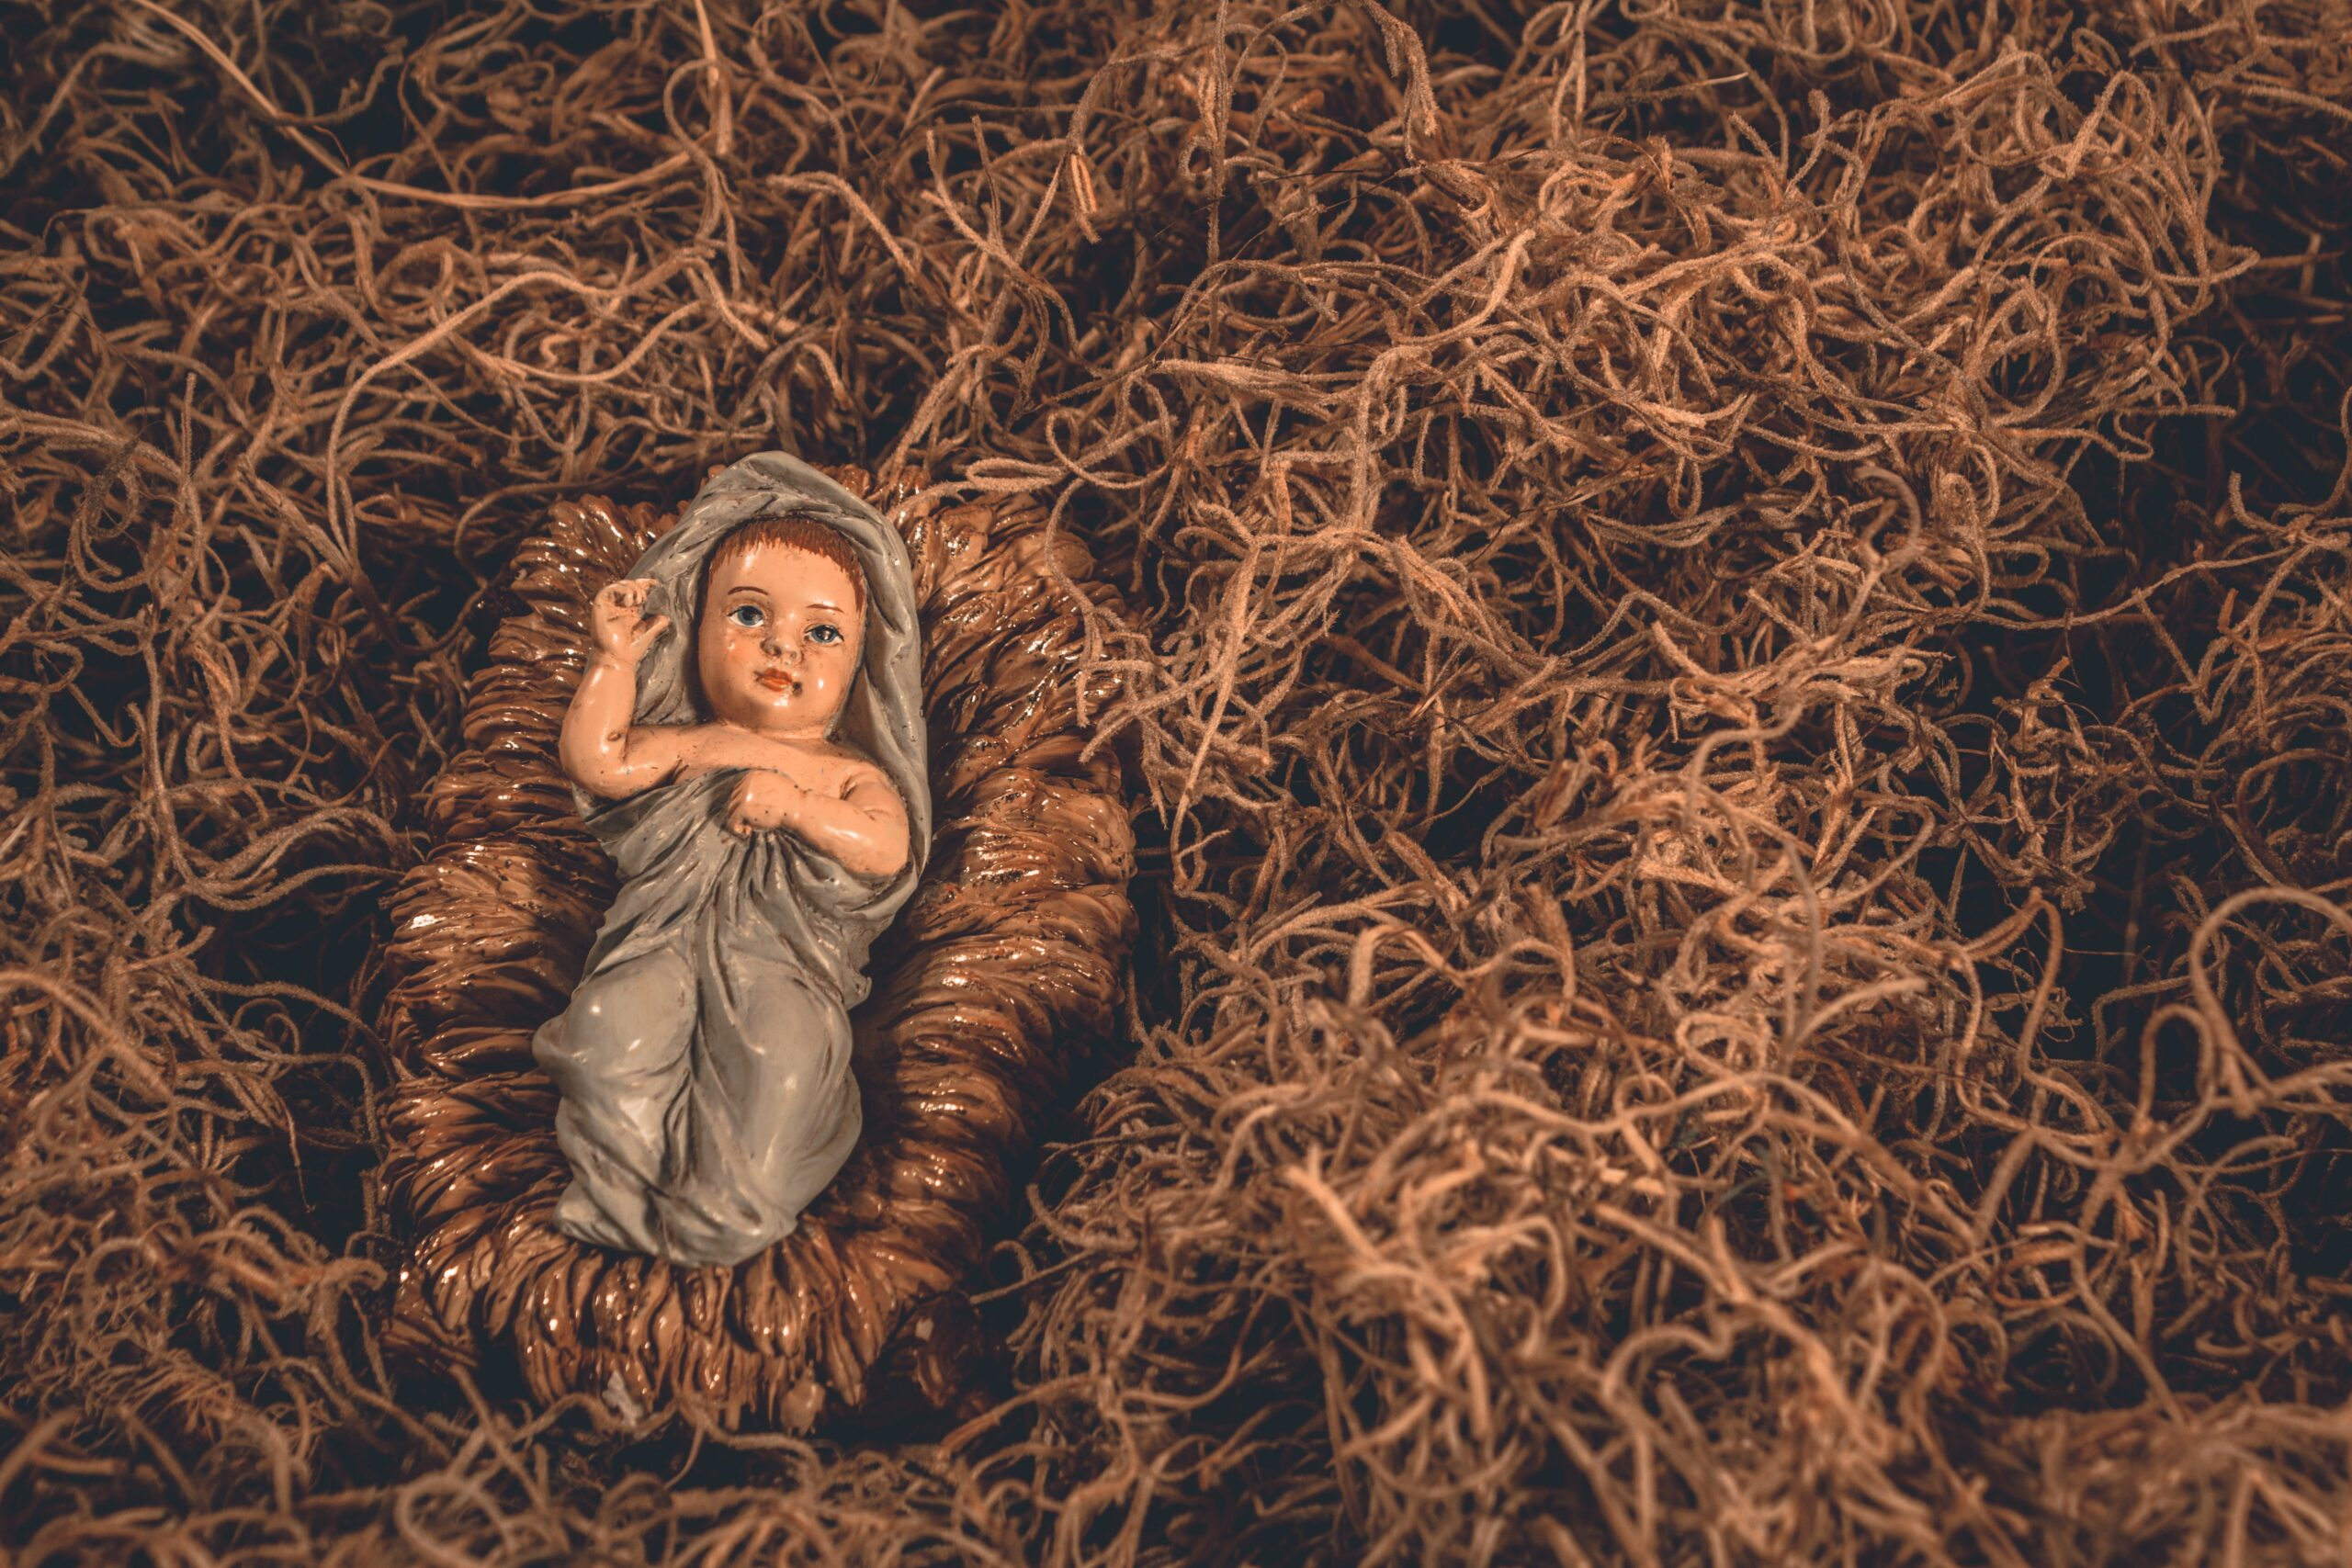 Baby Jesus figurine from a nativity set laying in straw